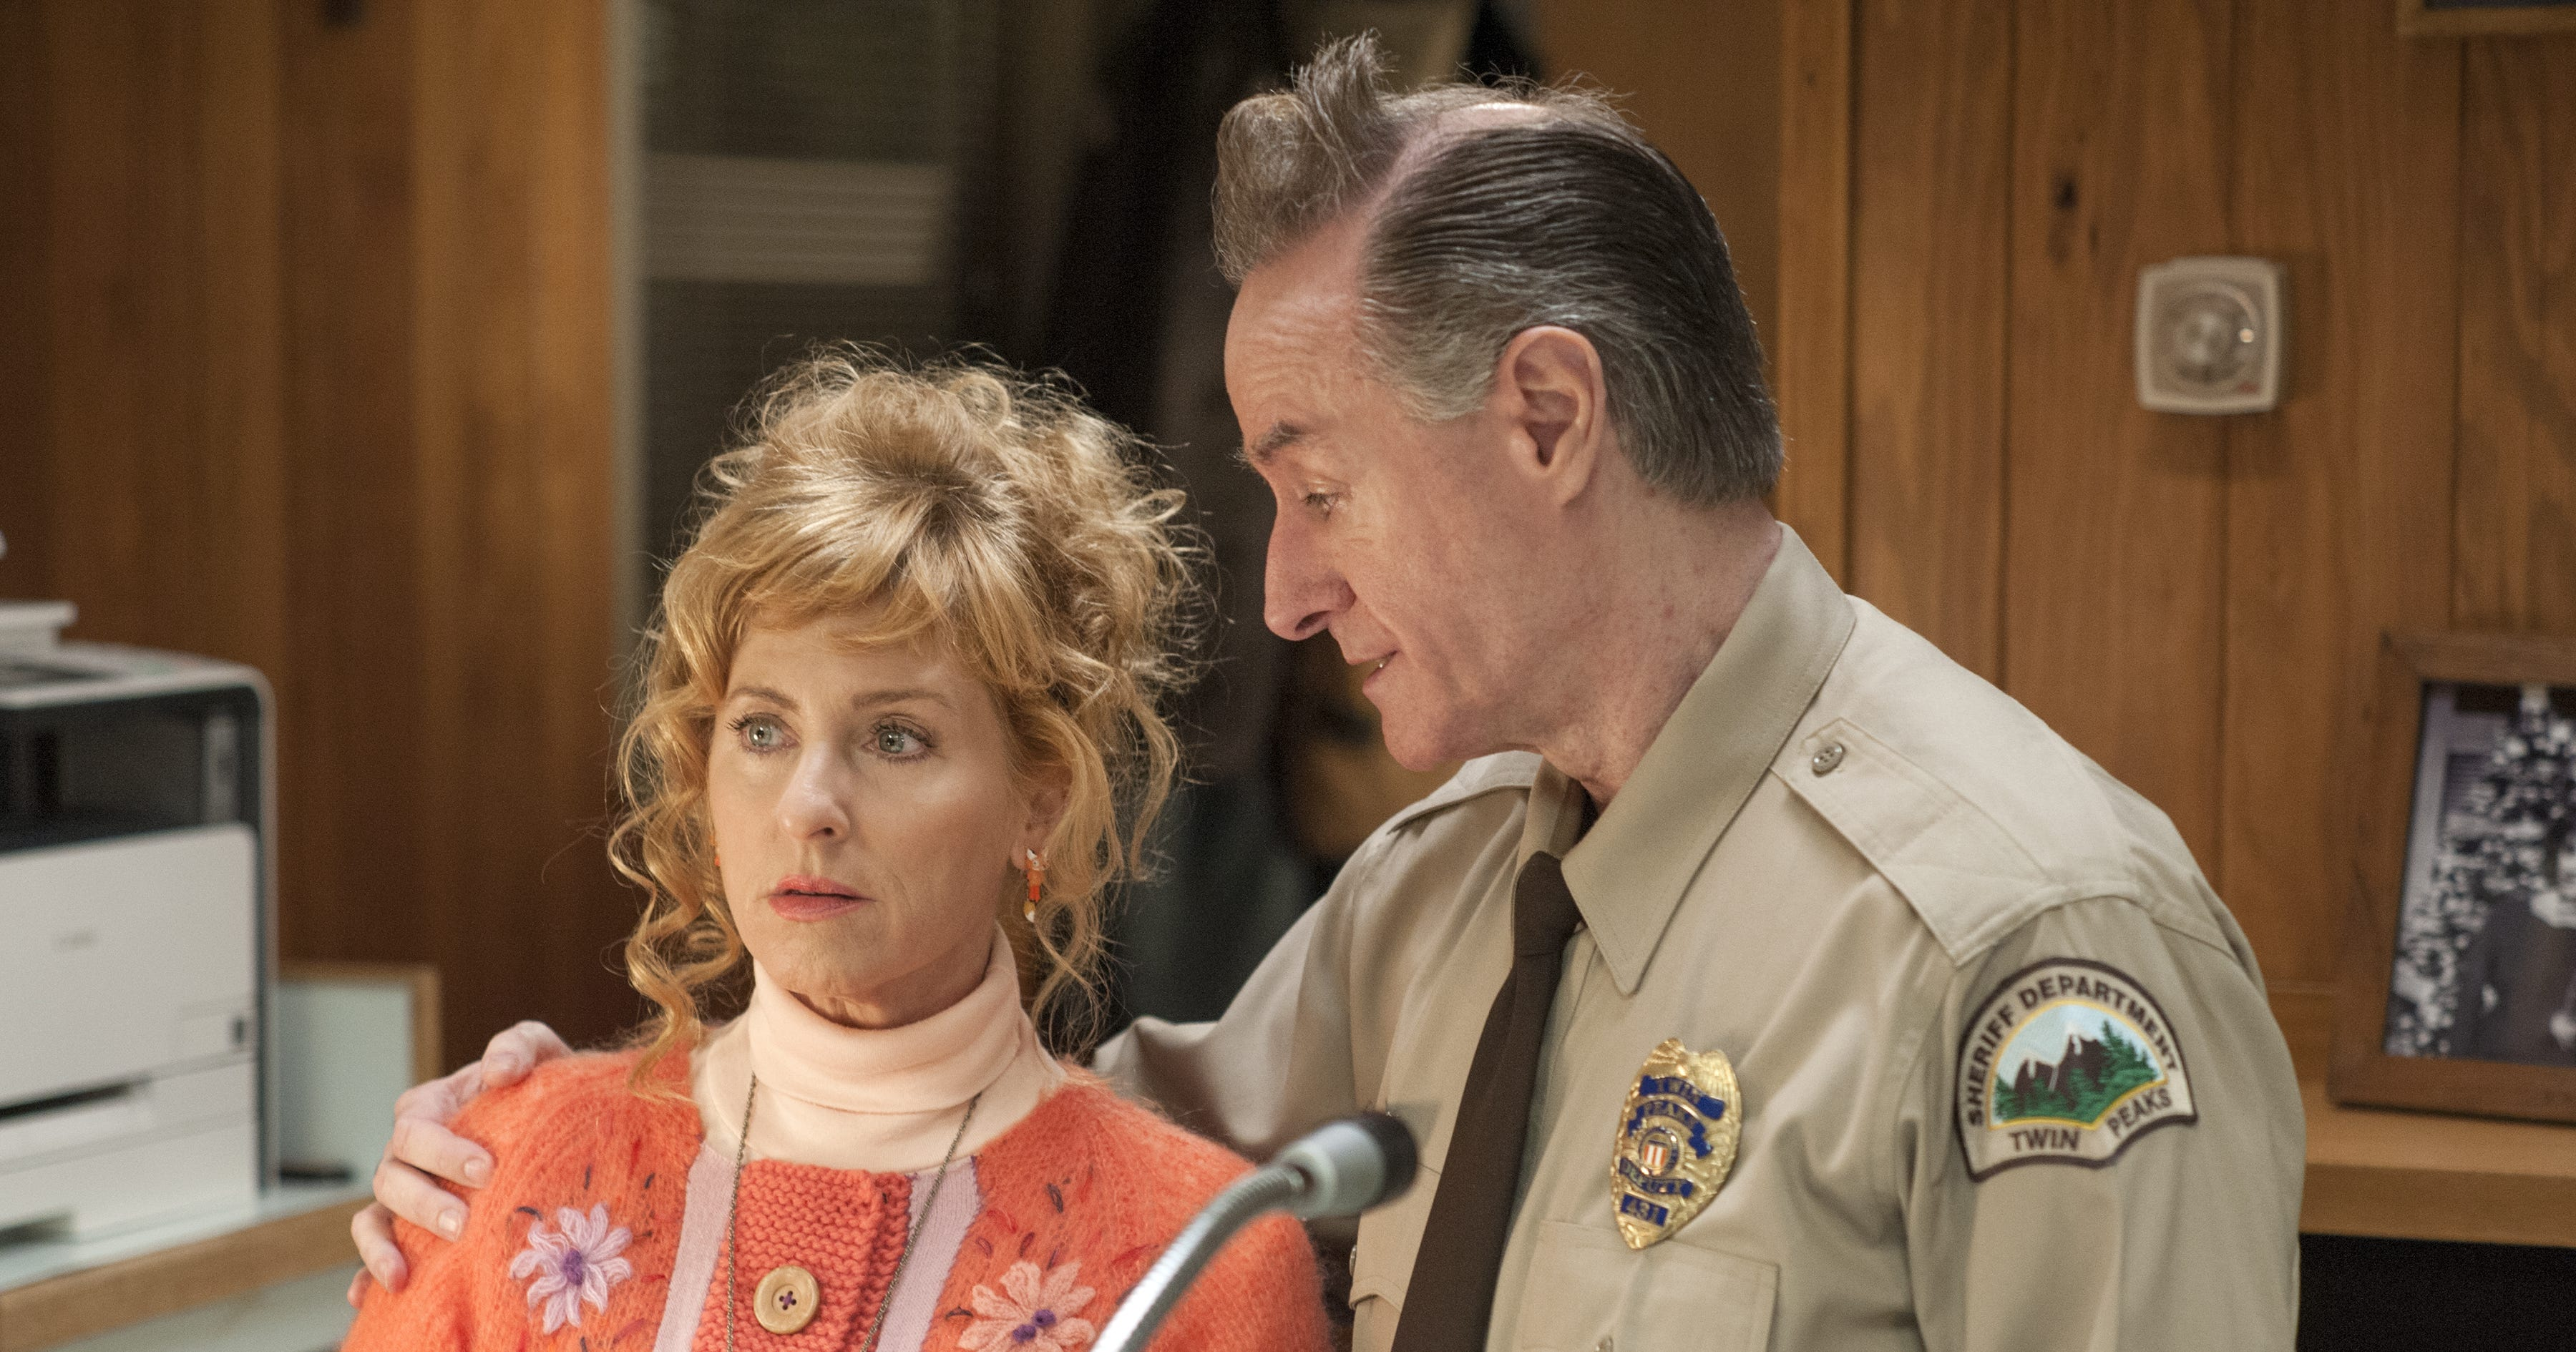 Twin Peaks Season 1, Episode 3 Recap: Well, Is It About The Bunny?